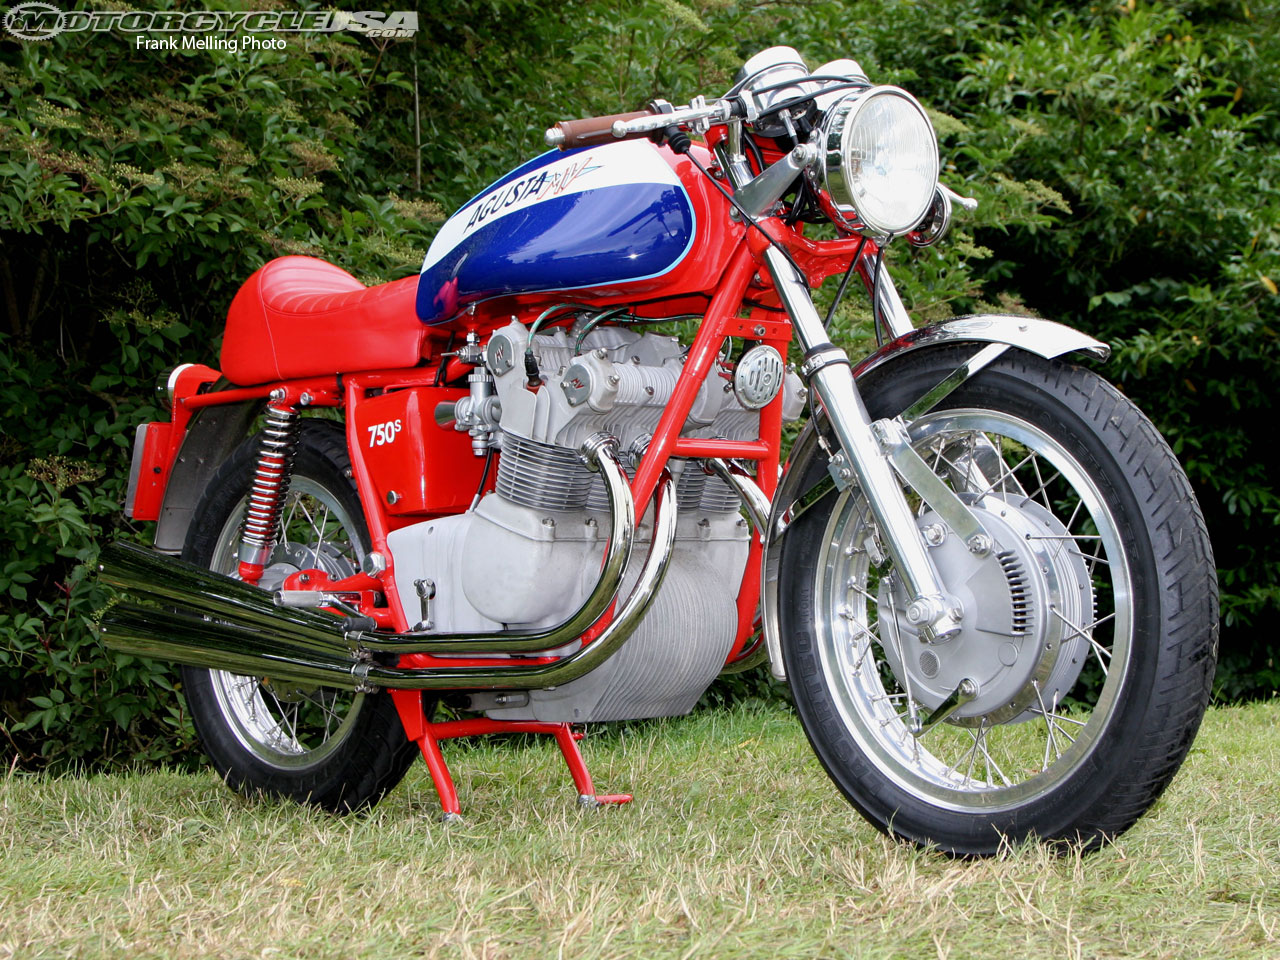 MV Agusta 750 GT 1972 images #113436